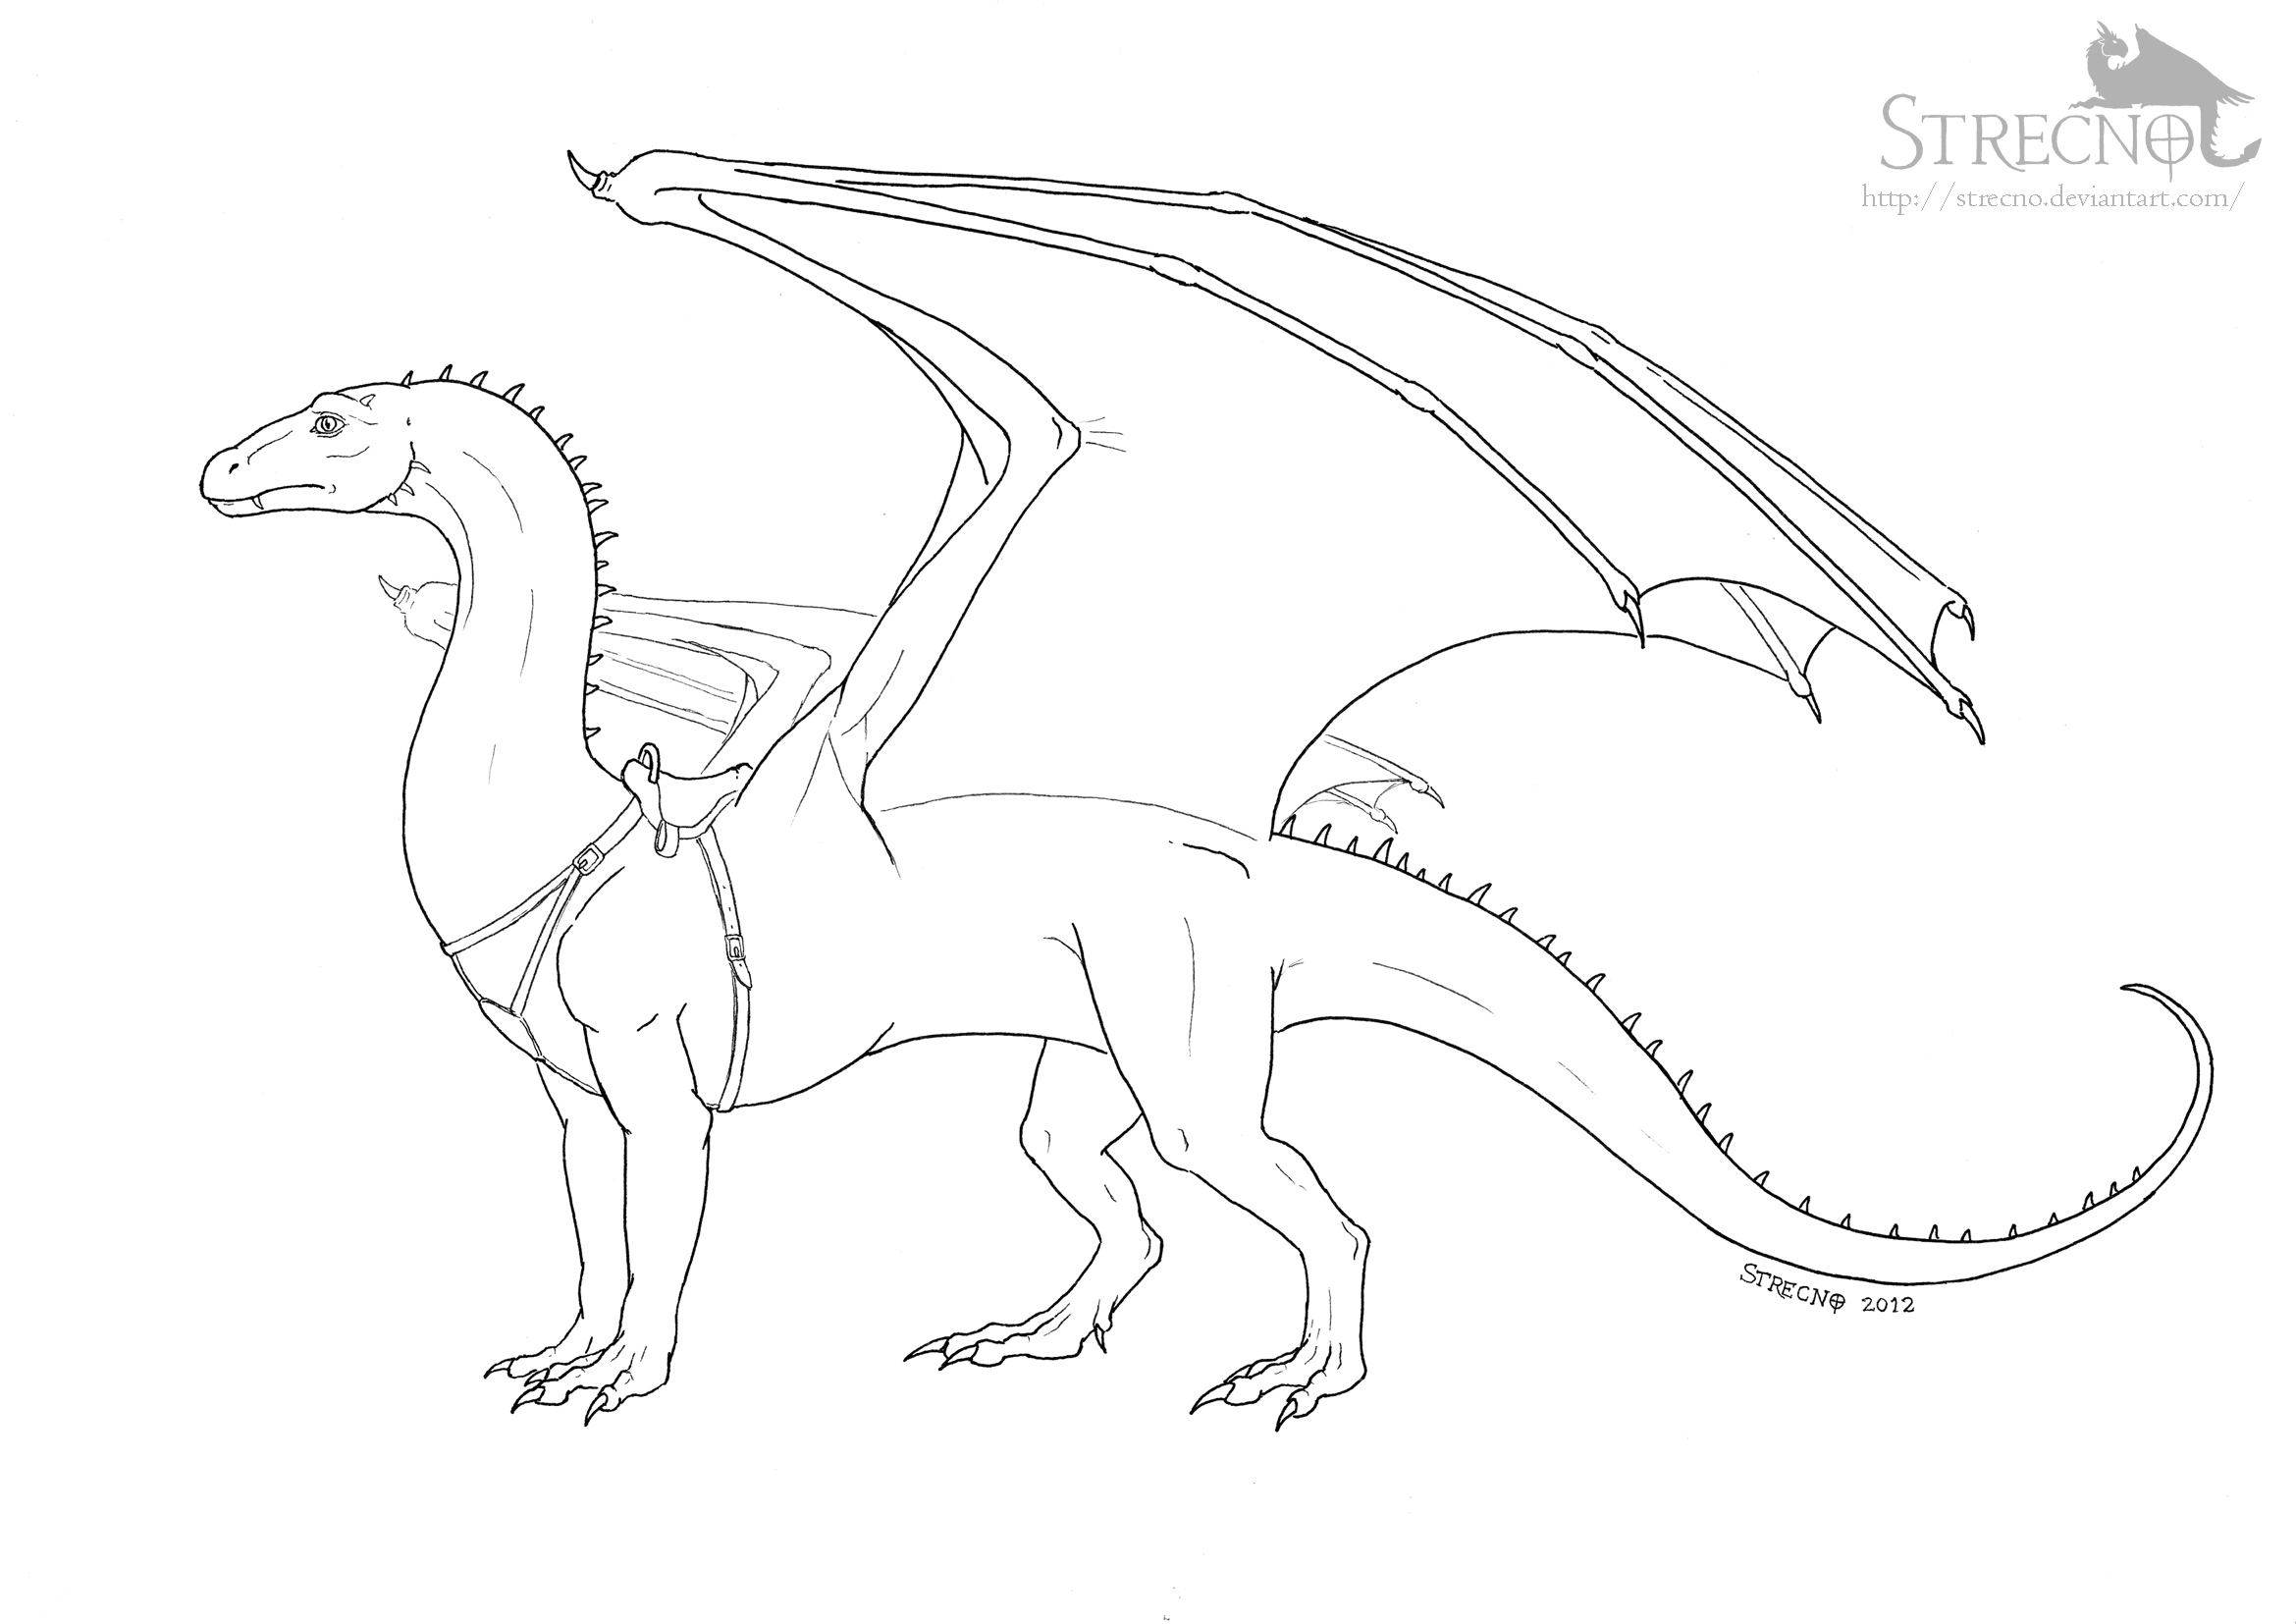 Saphira From The Movie Eragon - Free Coloring Pages